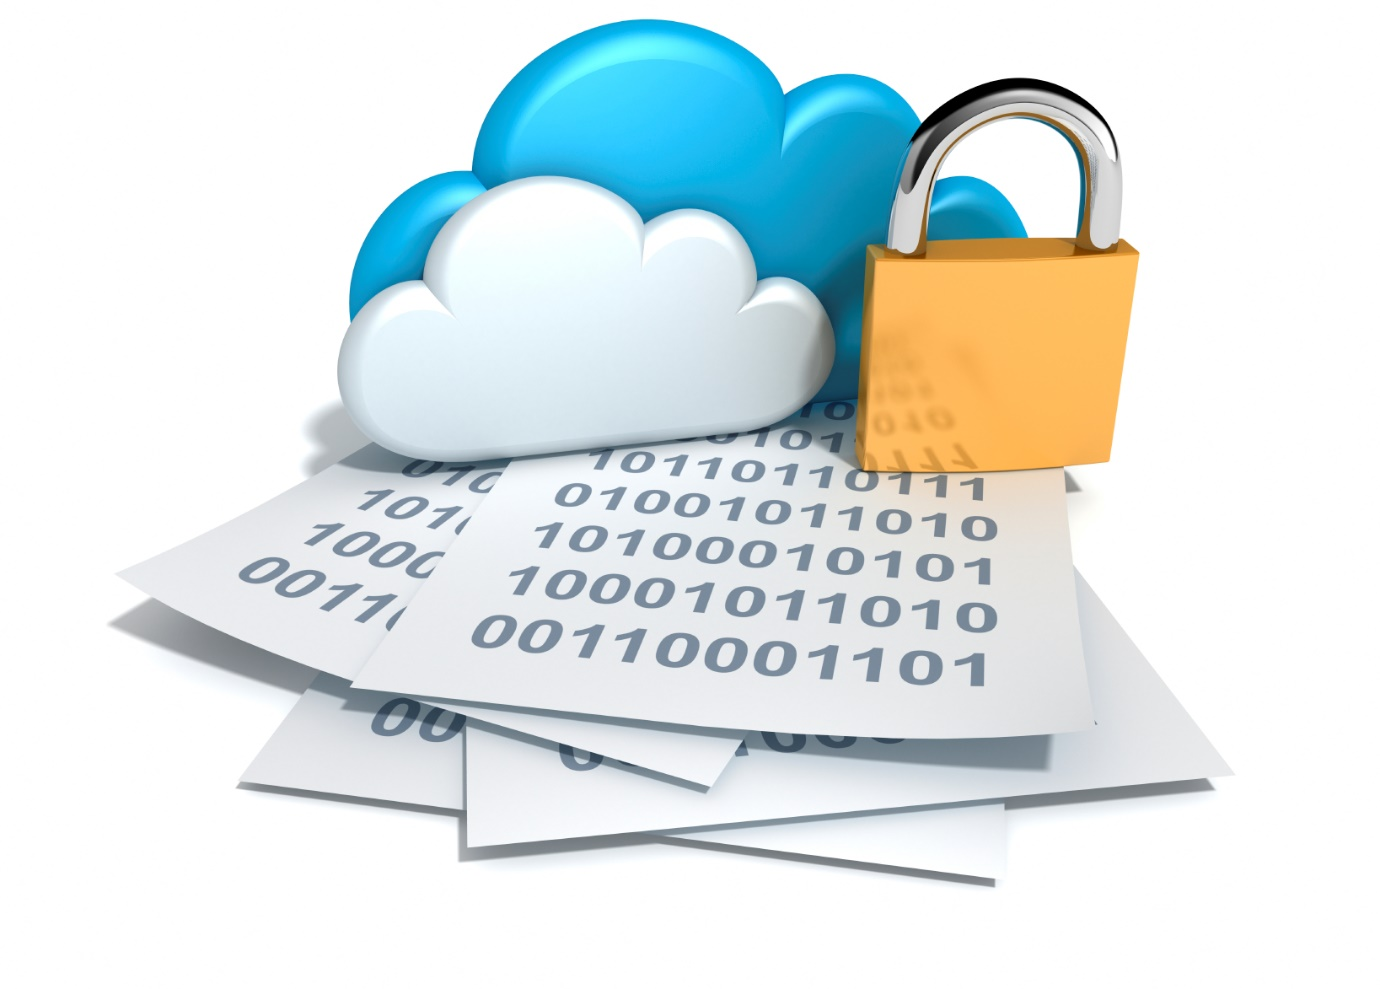 Security for the Cloud